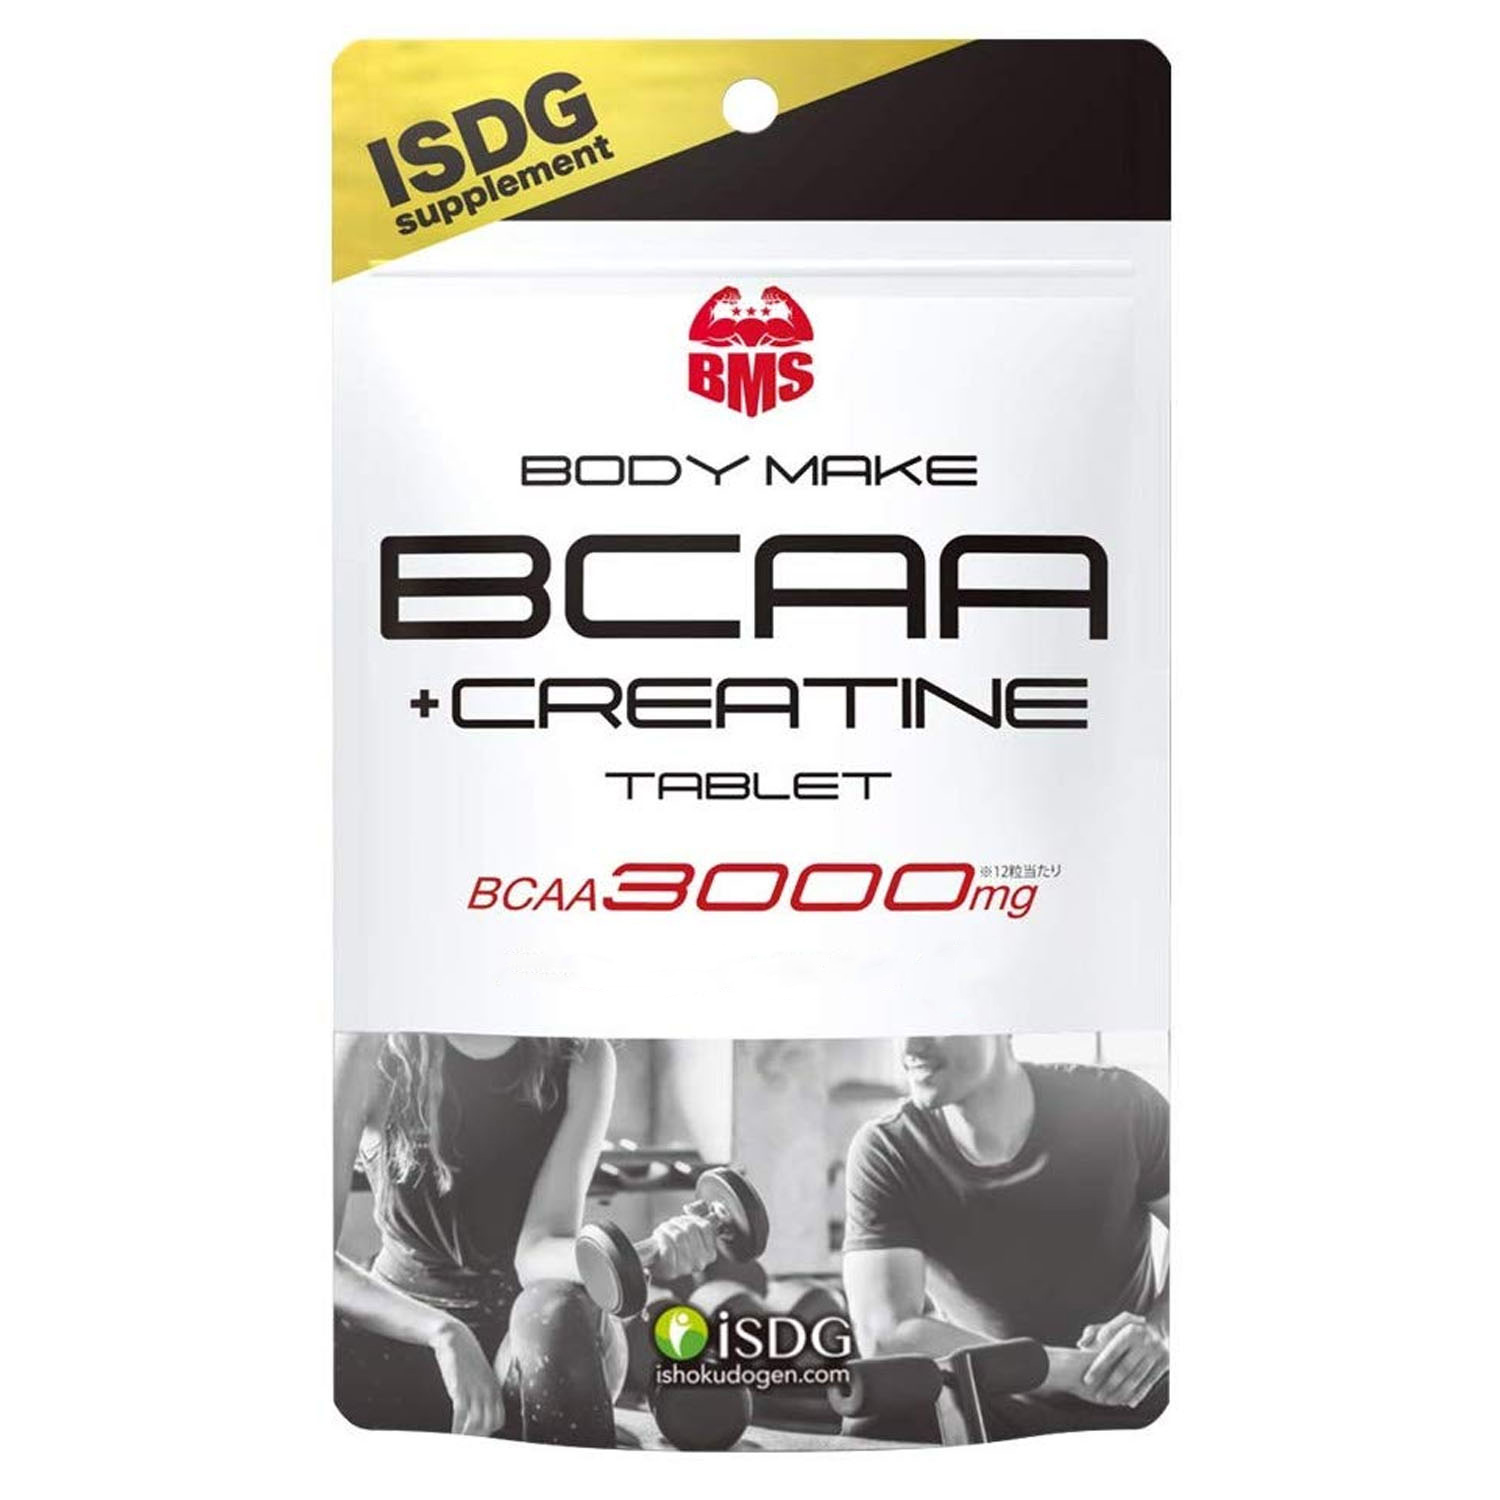 BCAA+CREATINE TABLET